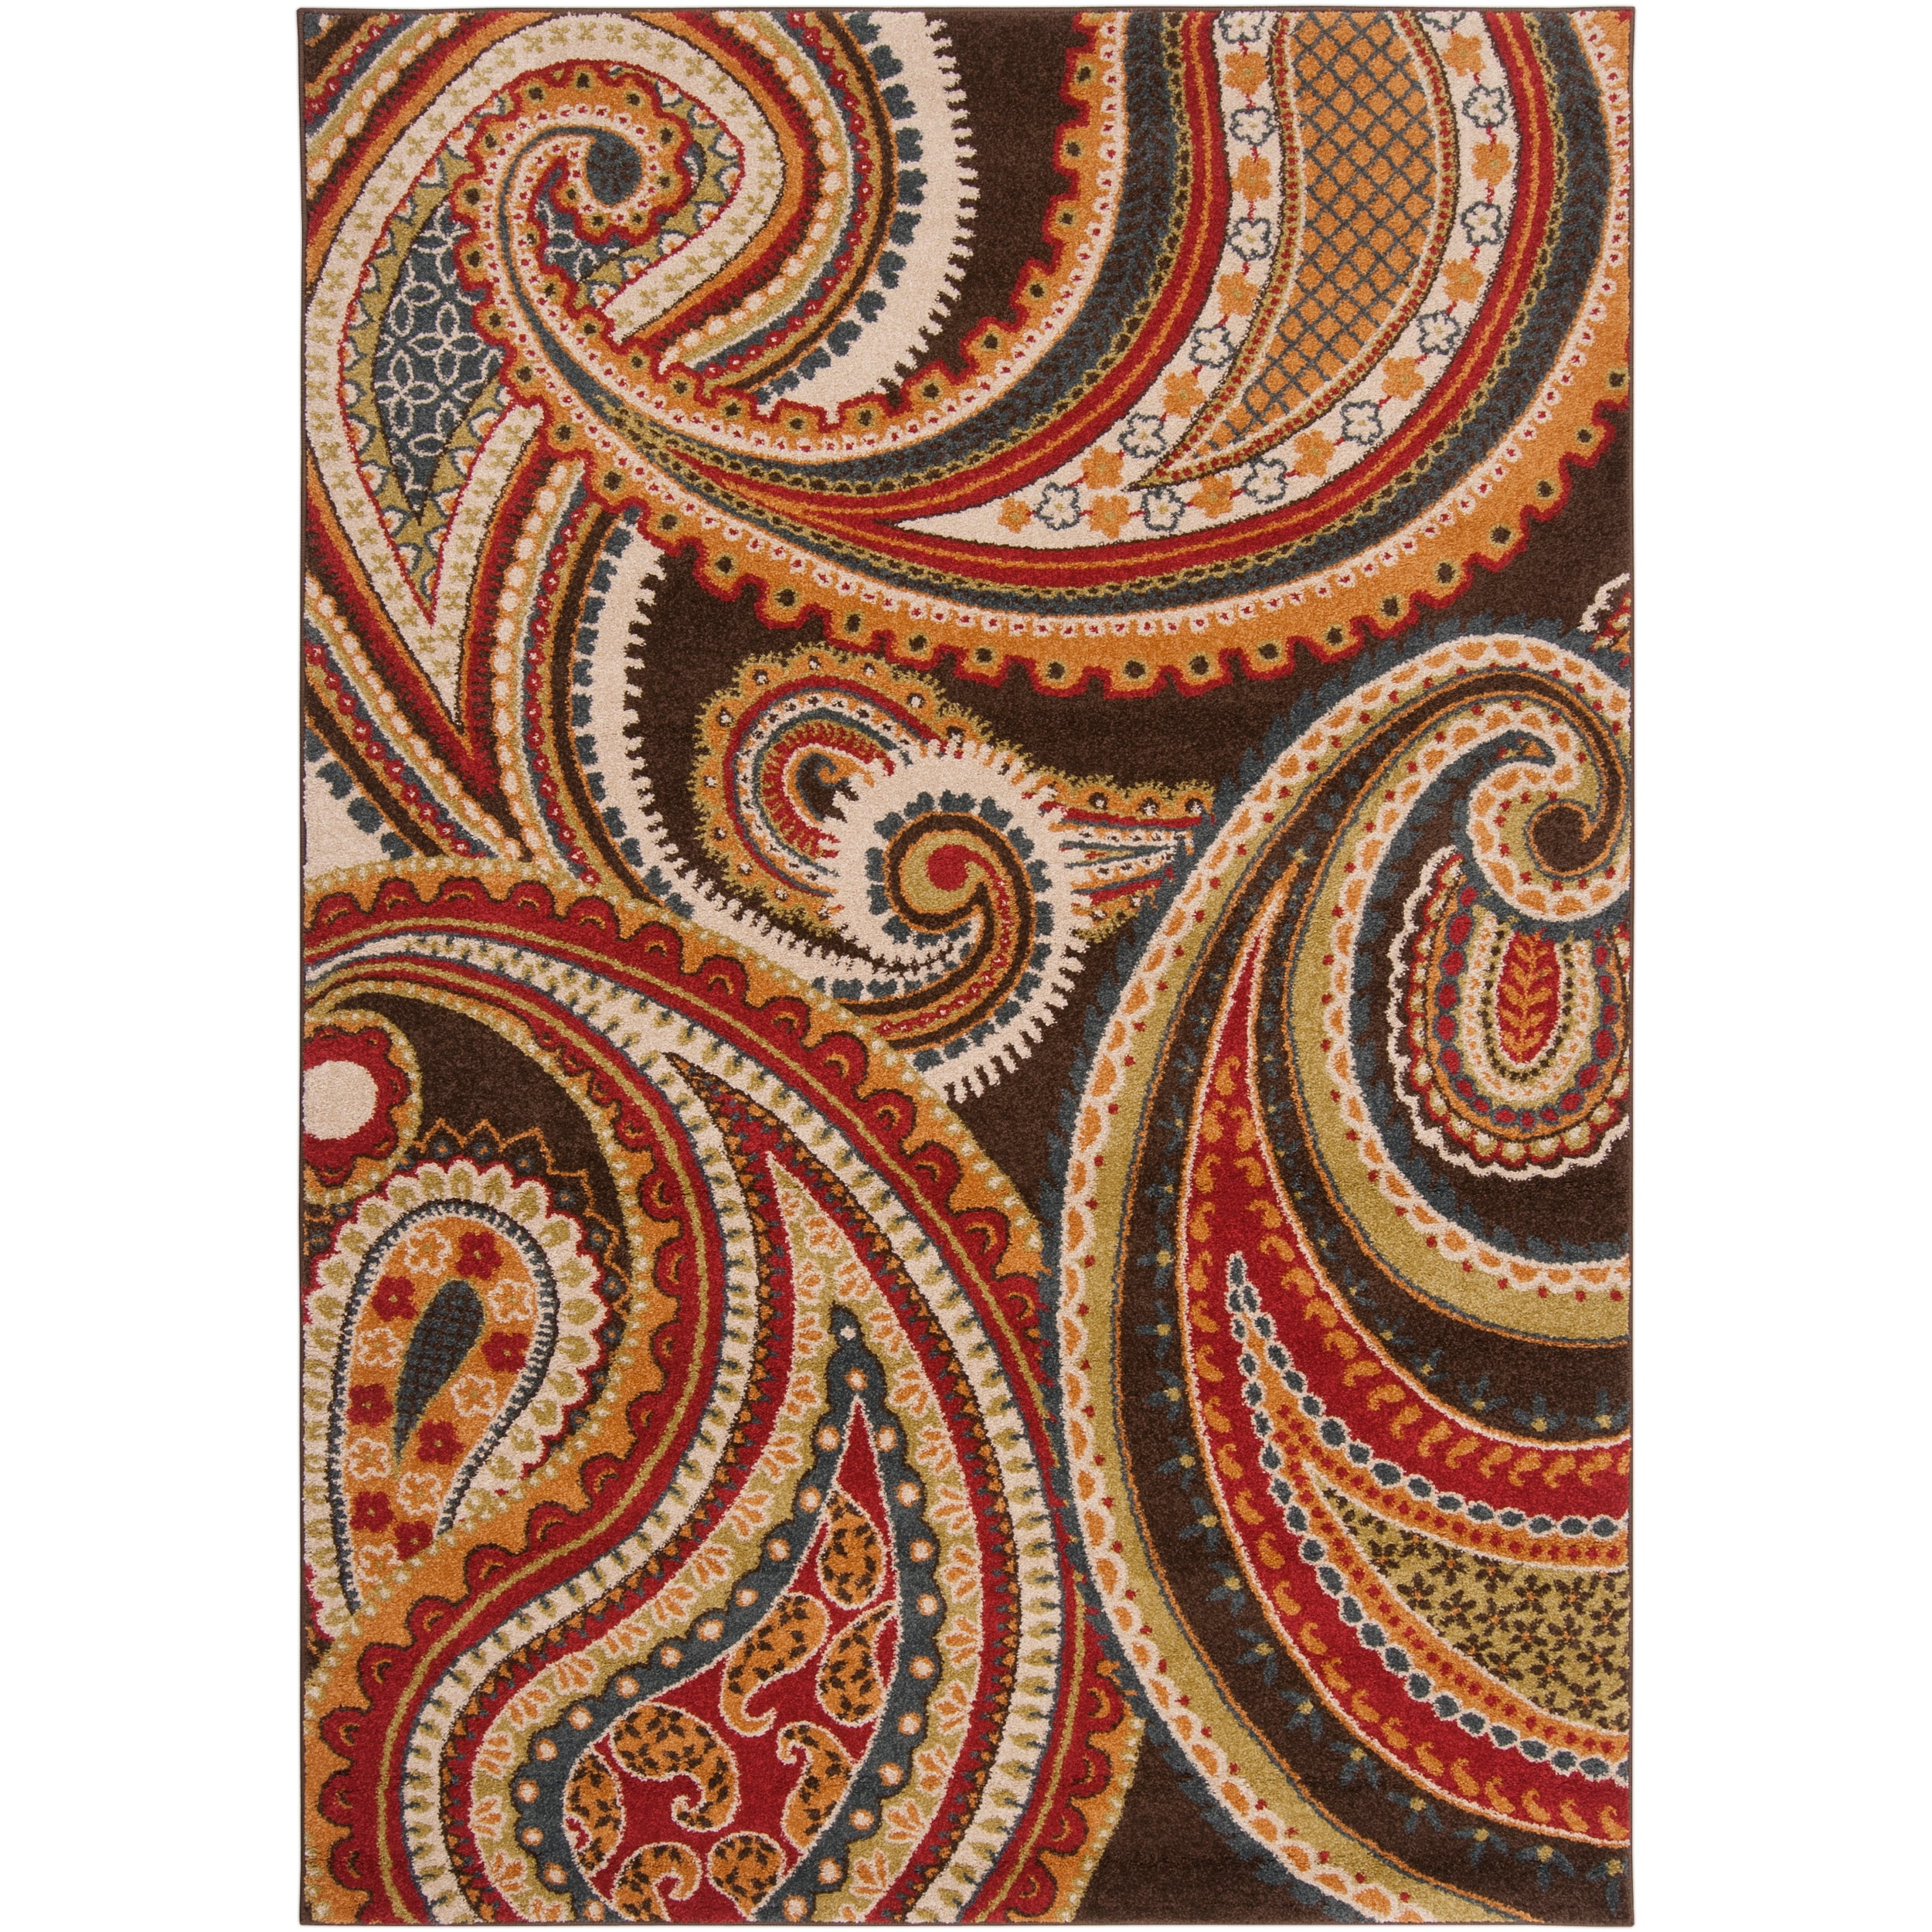 Meticulously Woven Contemporary Brown Red Floral Paisley